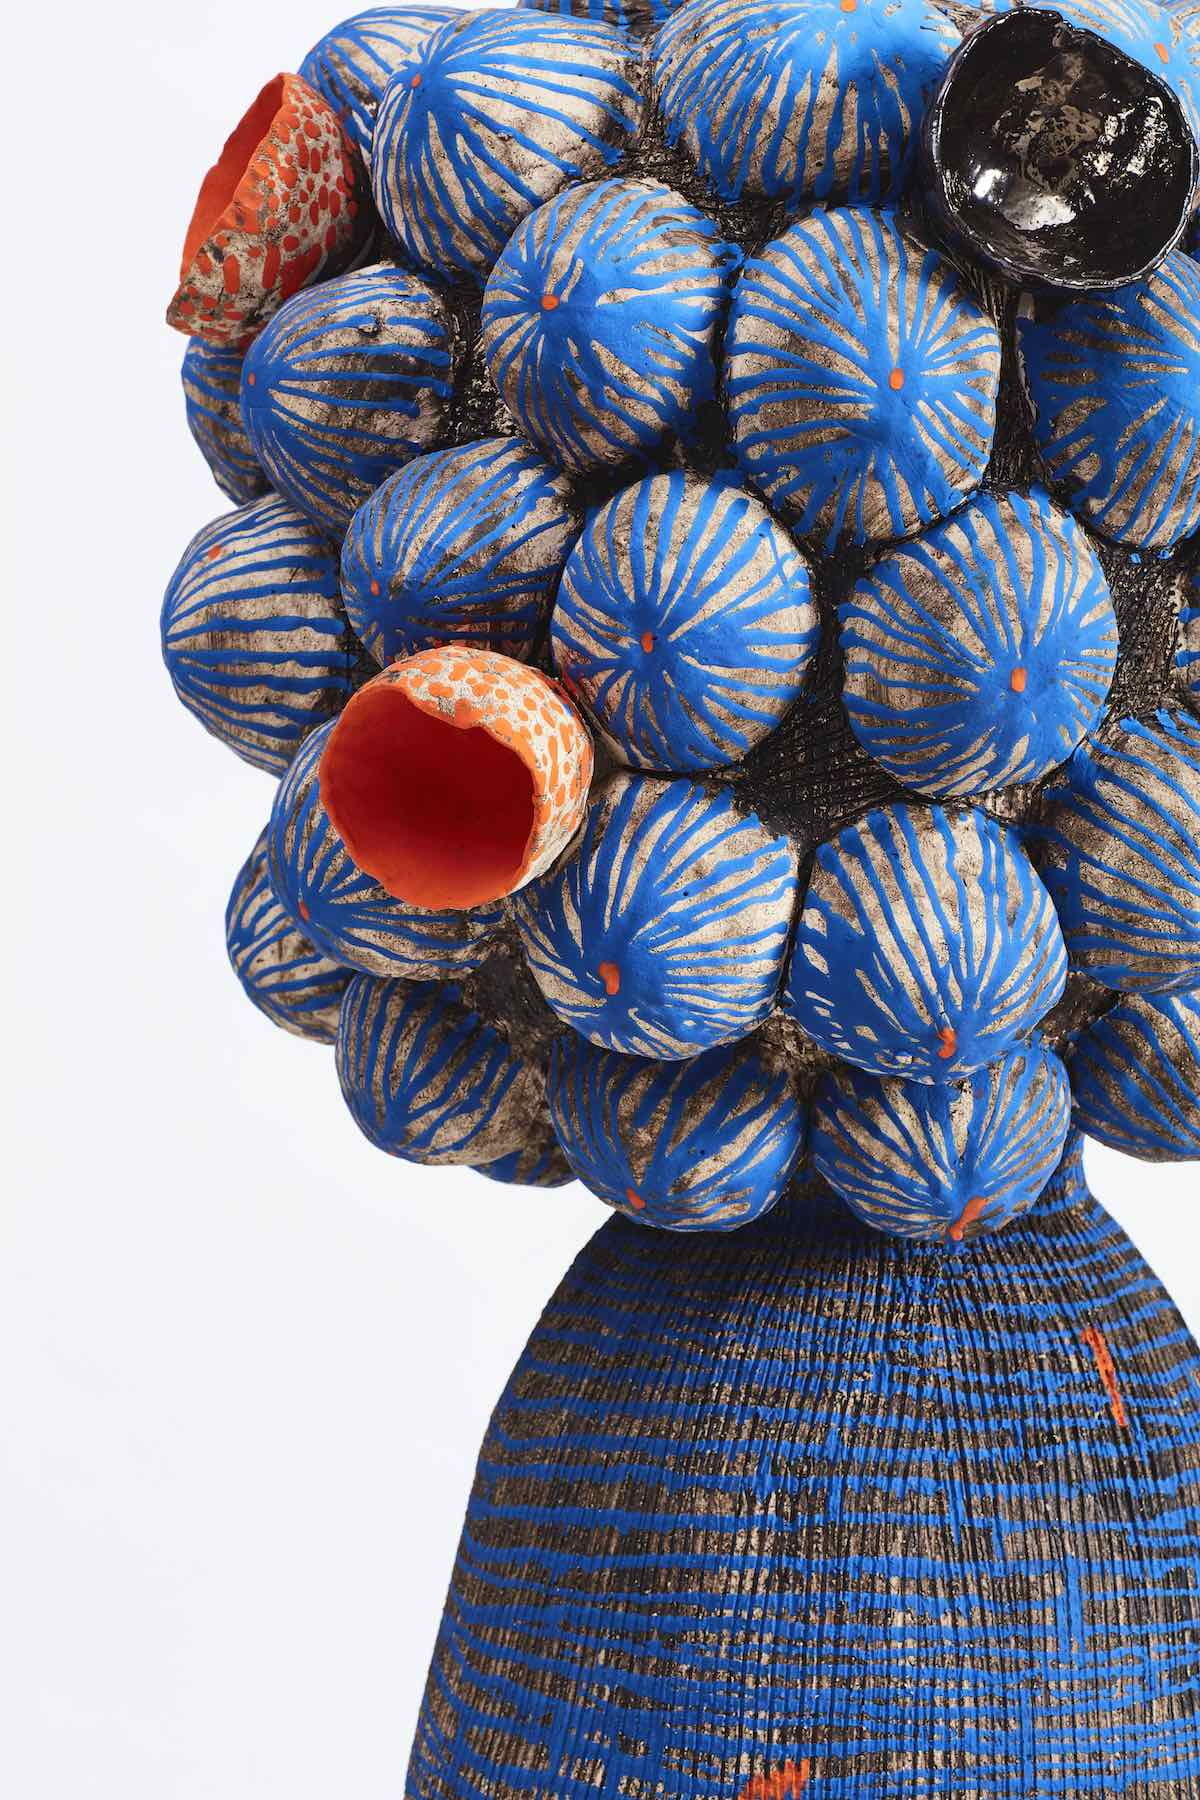 MAGODI ABONGILE vase by Zizipho Poswa - Photo by Hayden Phipps, courtesy of Southern Guild.